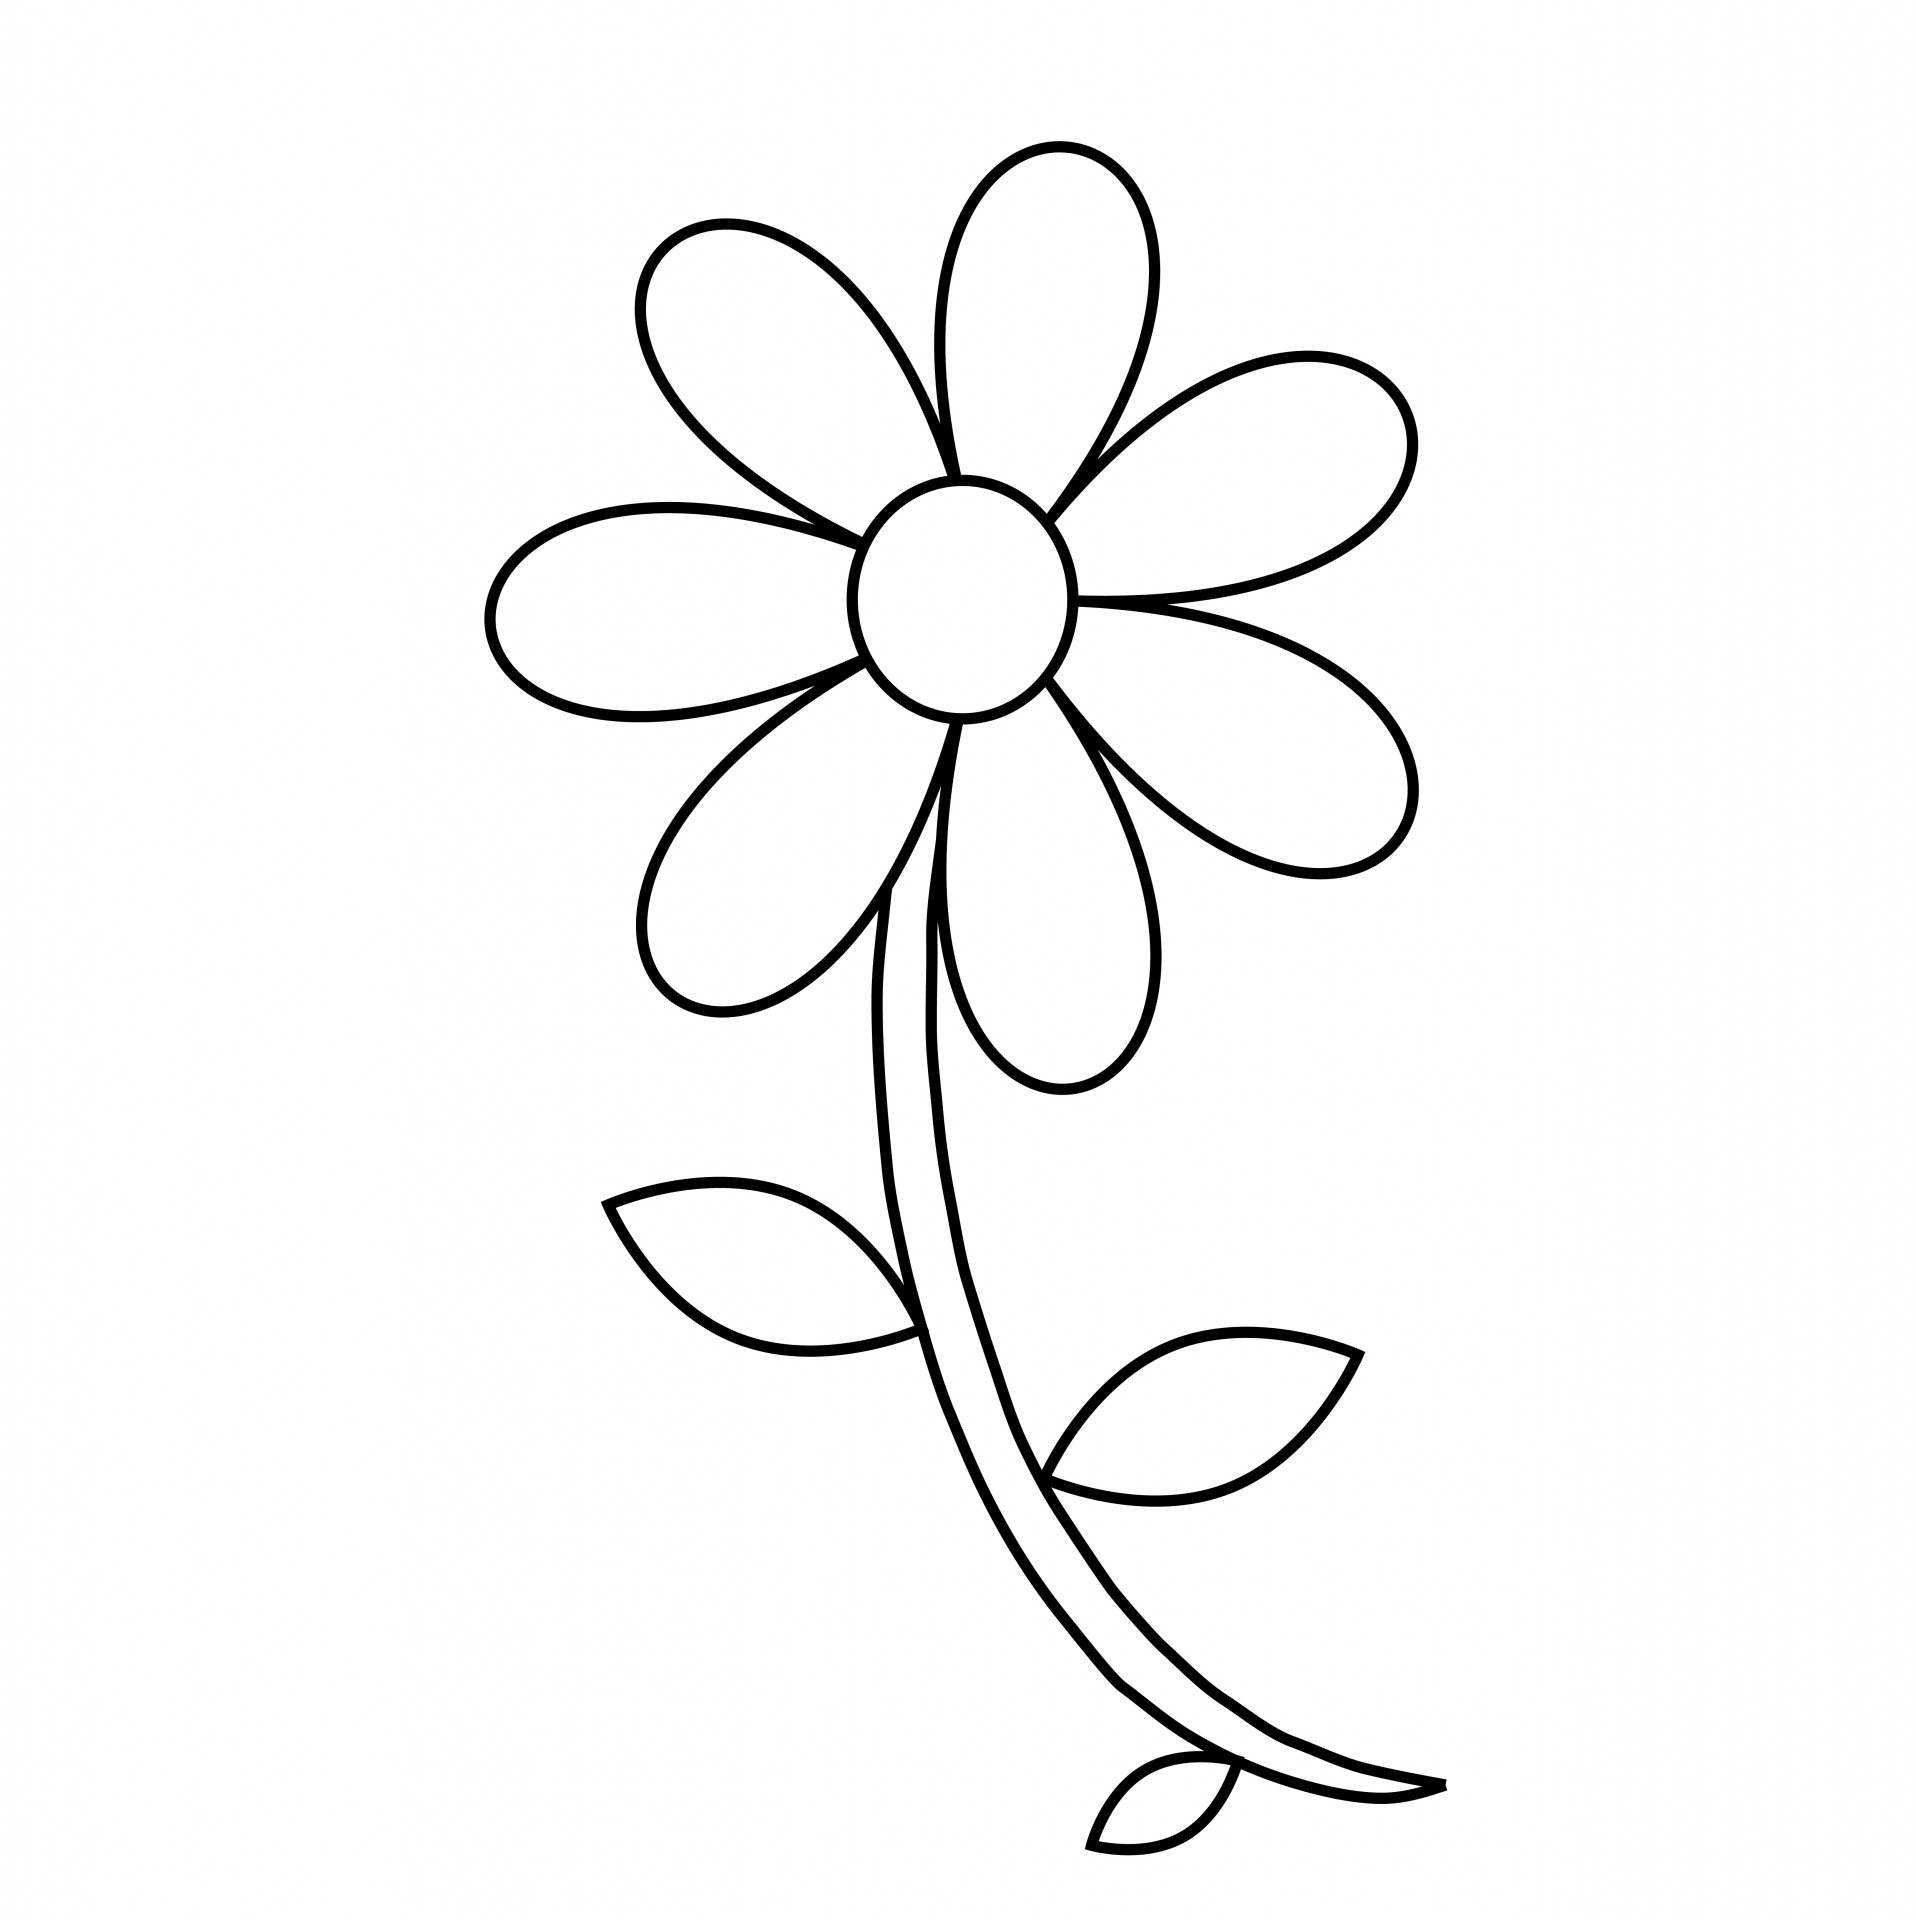 Free outline download clip. Flower clipart simple black and white